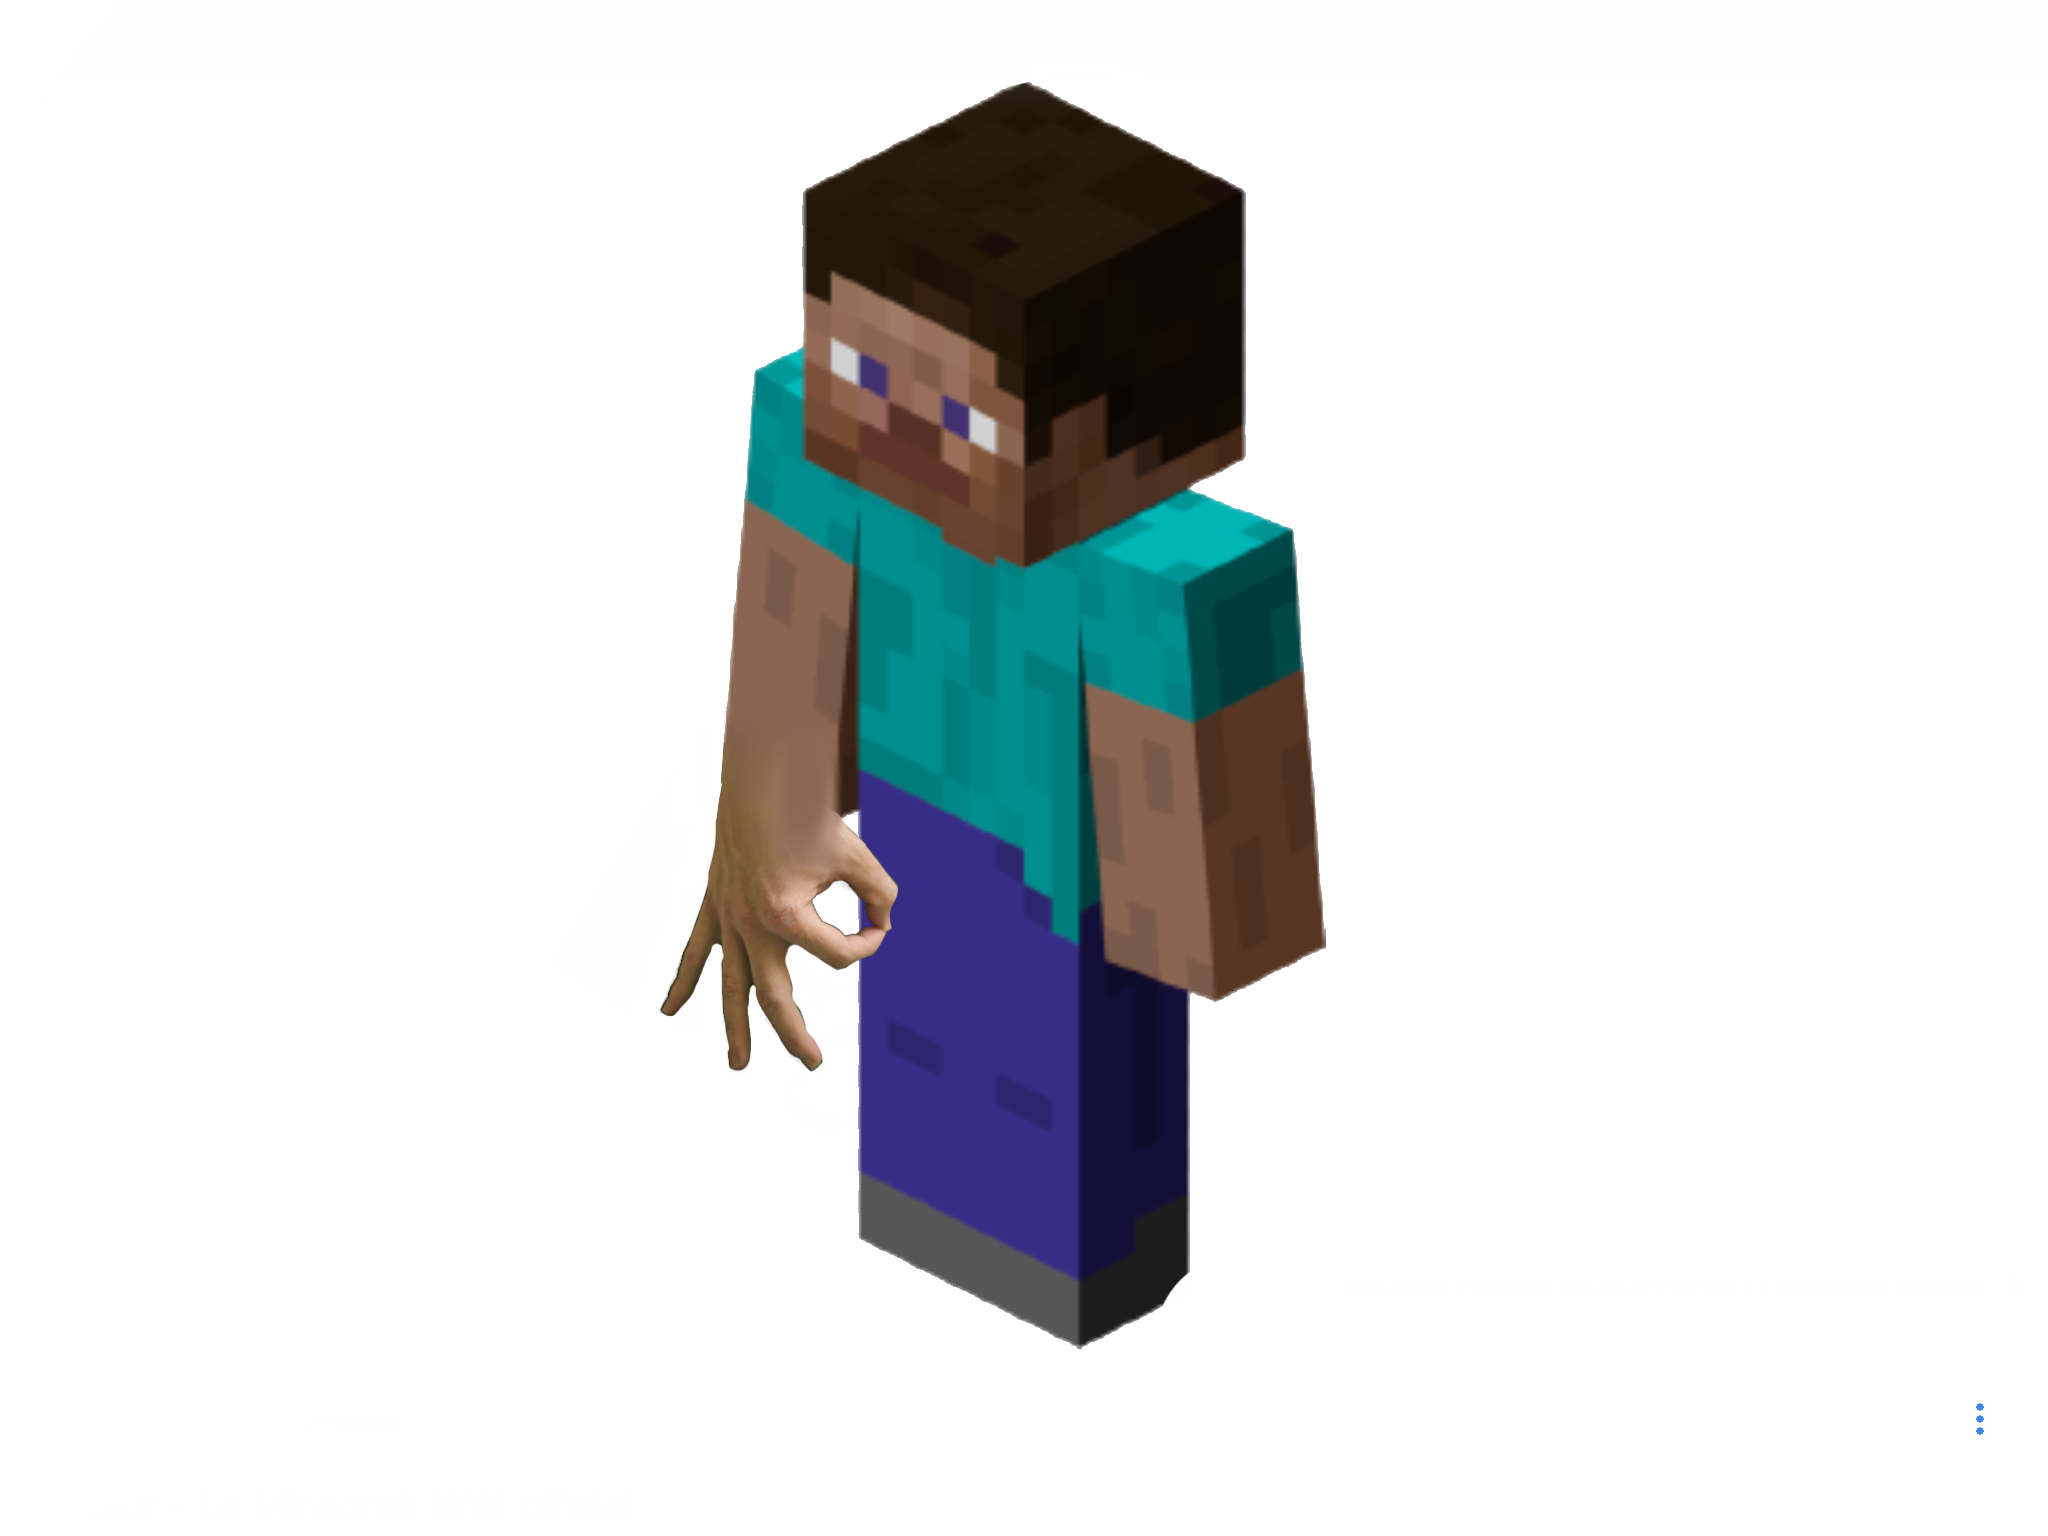 Extremely Cursed Image Bad Memes Minecraft Images Cursed Images